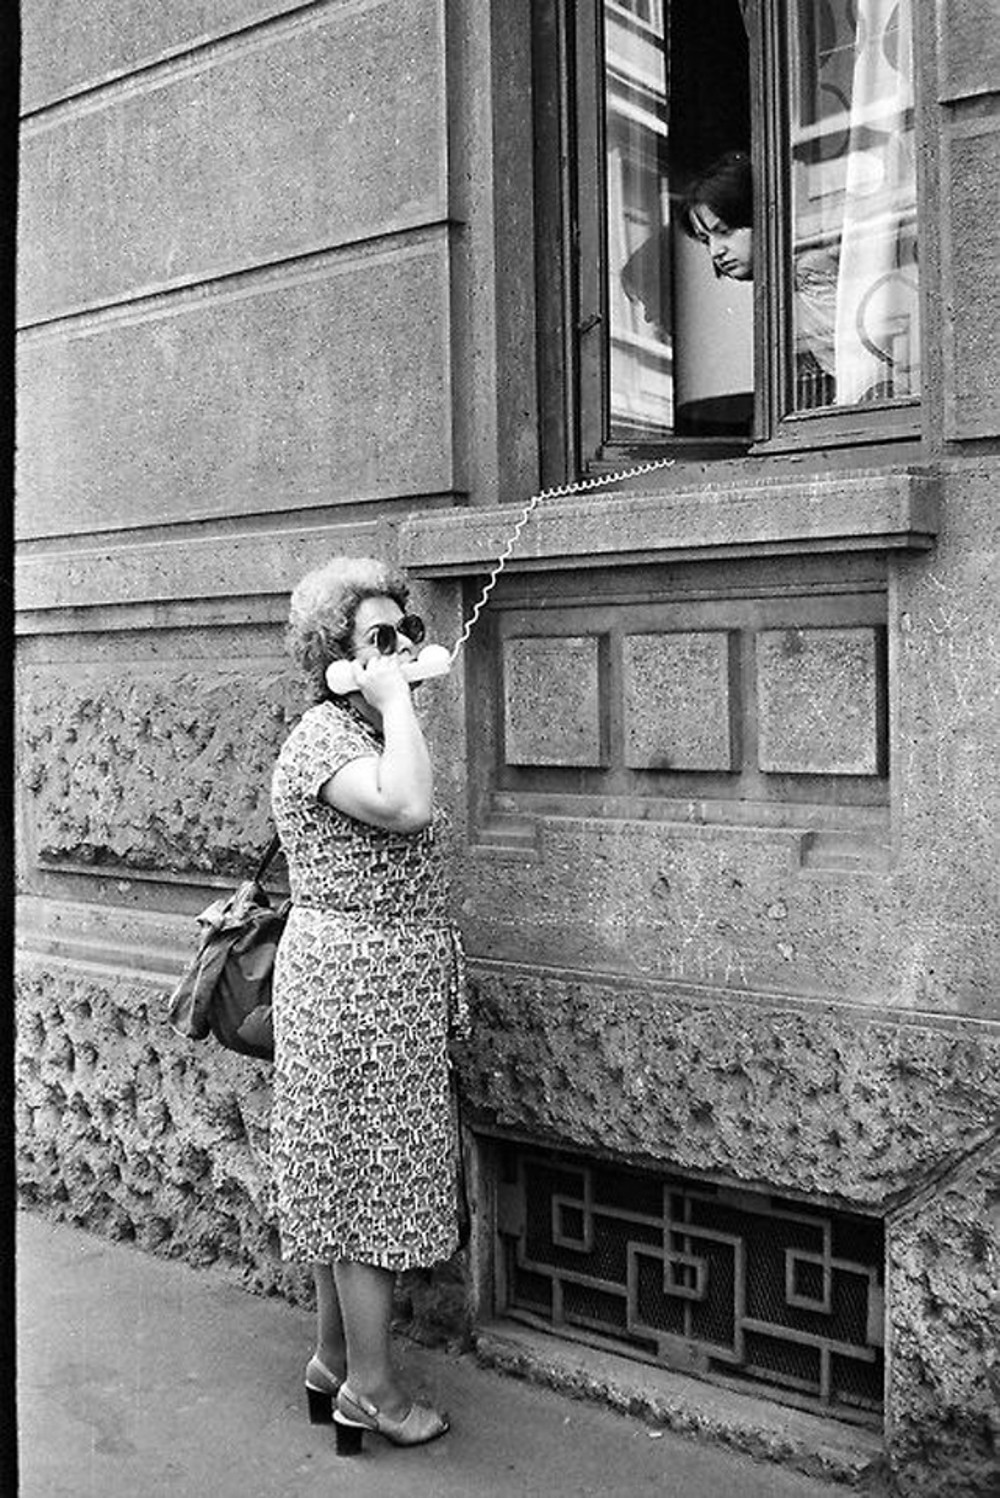 funny old mobile phones